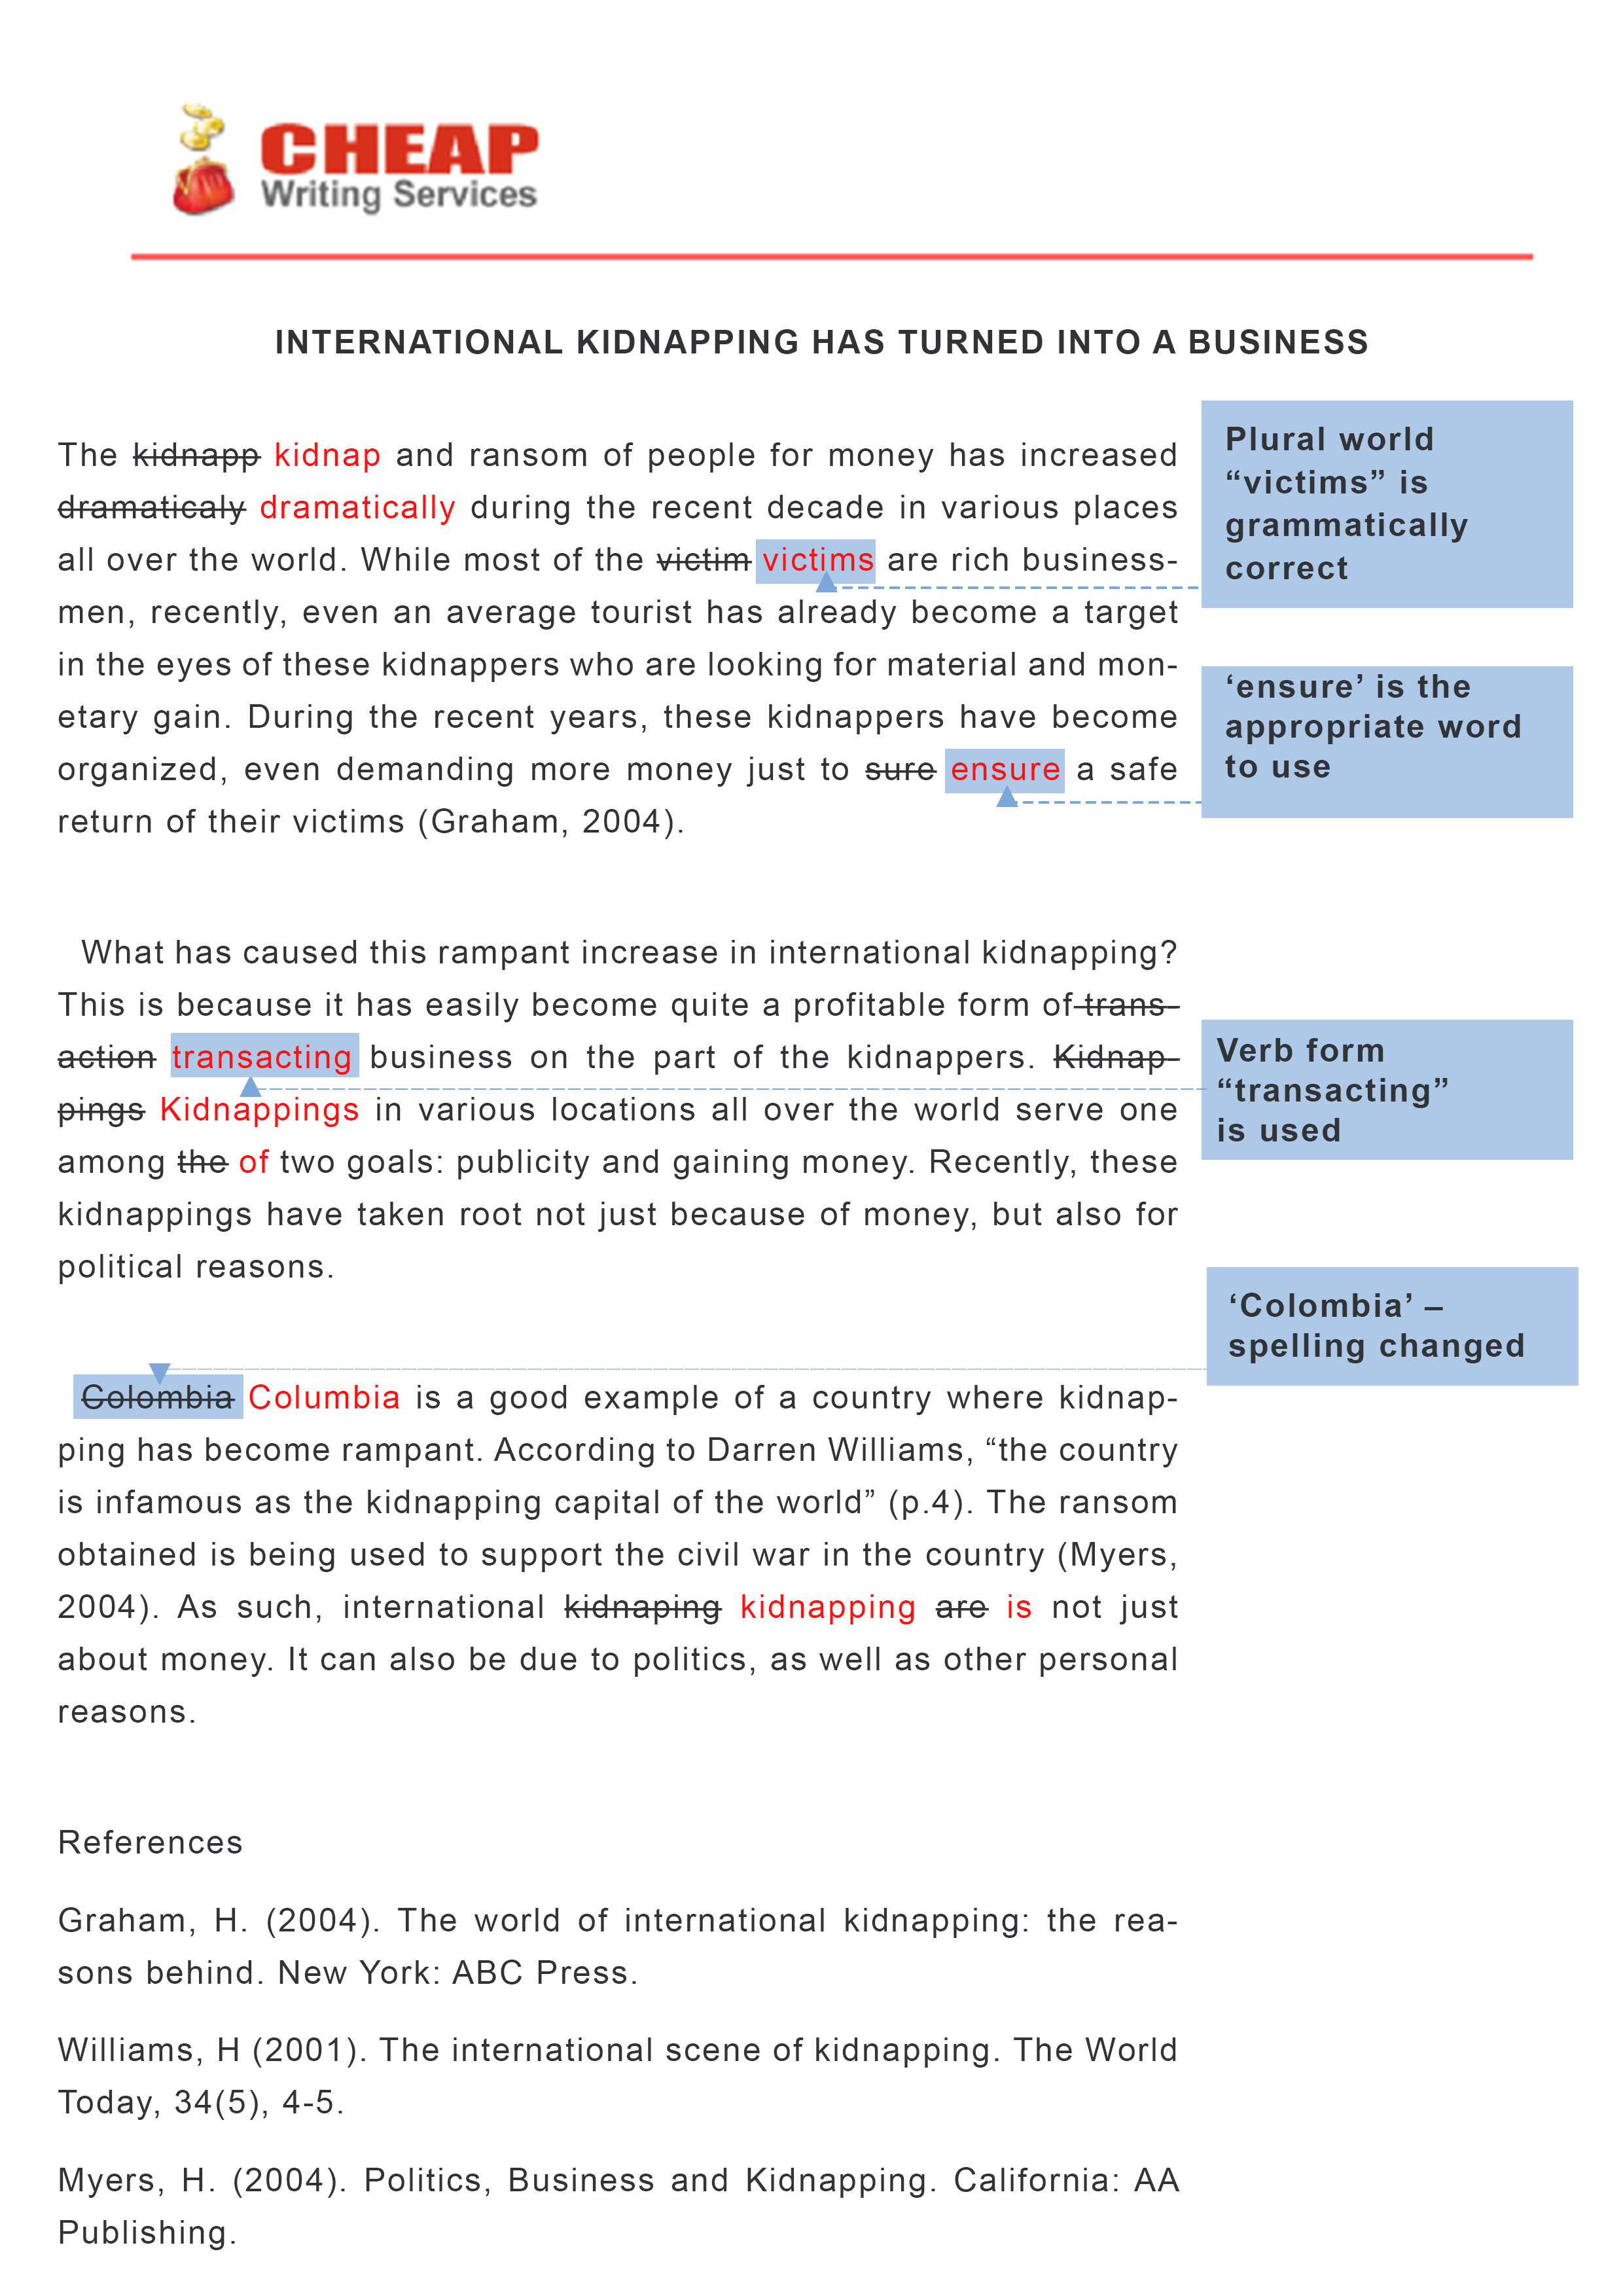 007 Proofread Essay Example Unique Proofreading Service Website University Full